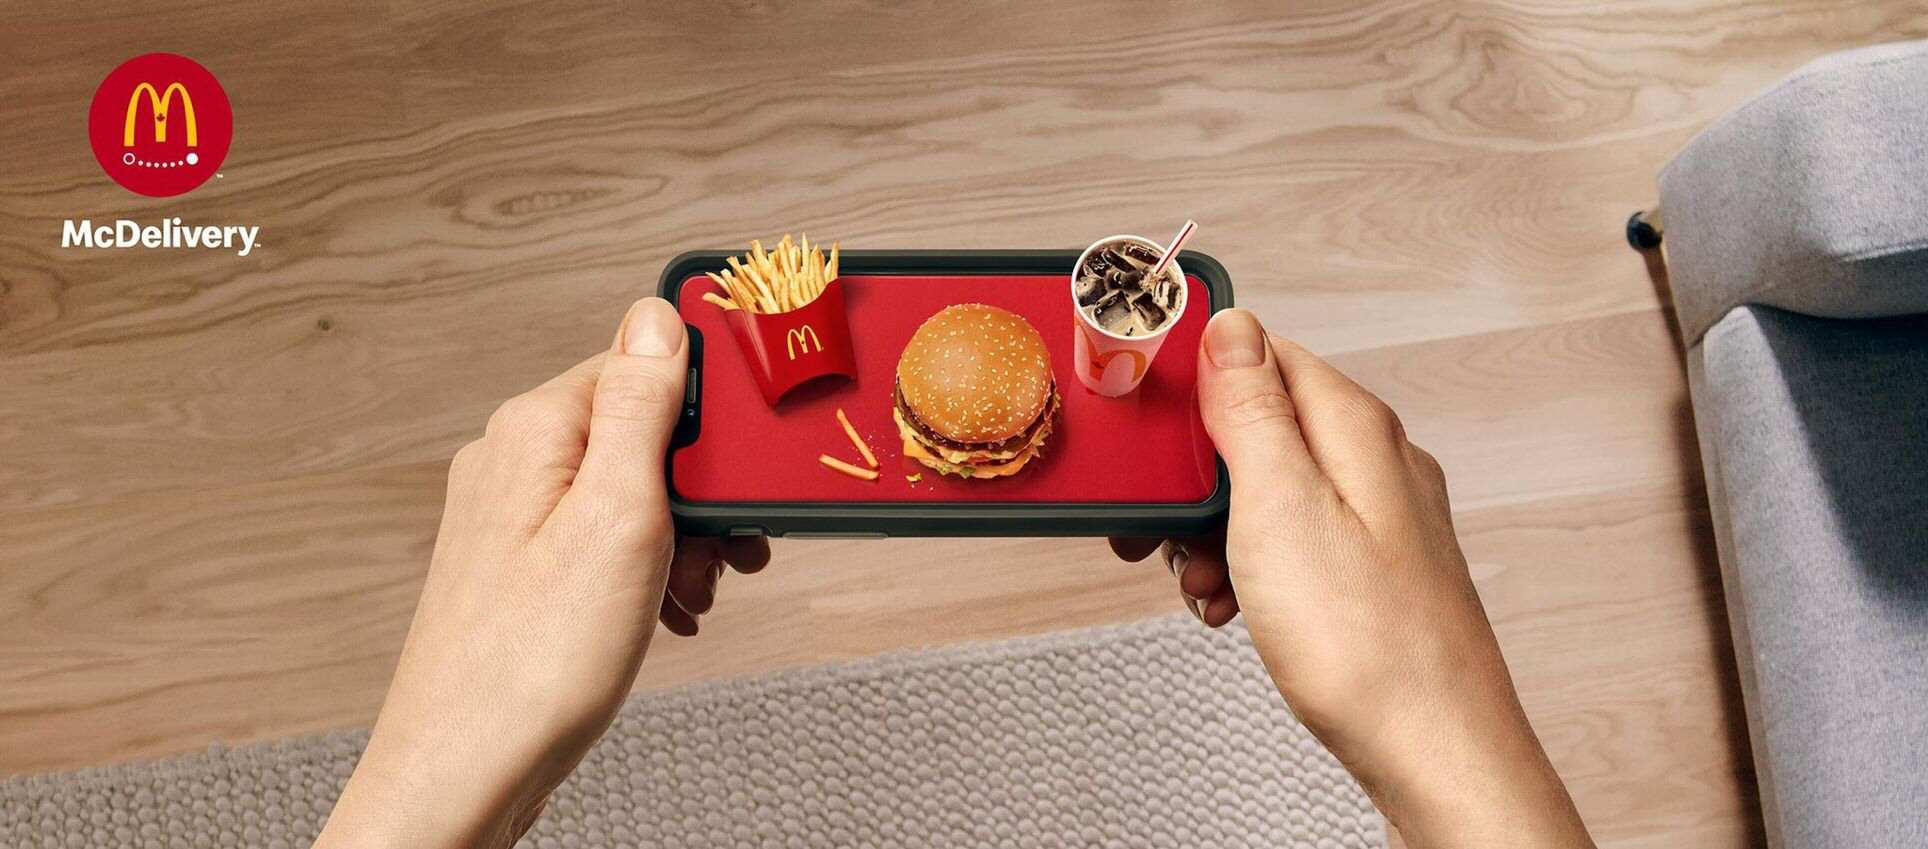 McDonald's at your fingertips